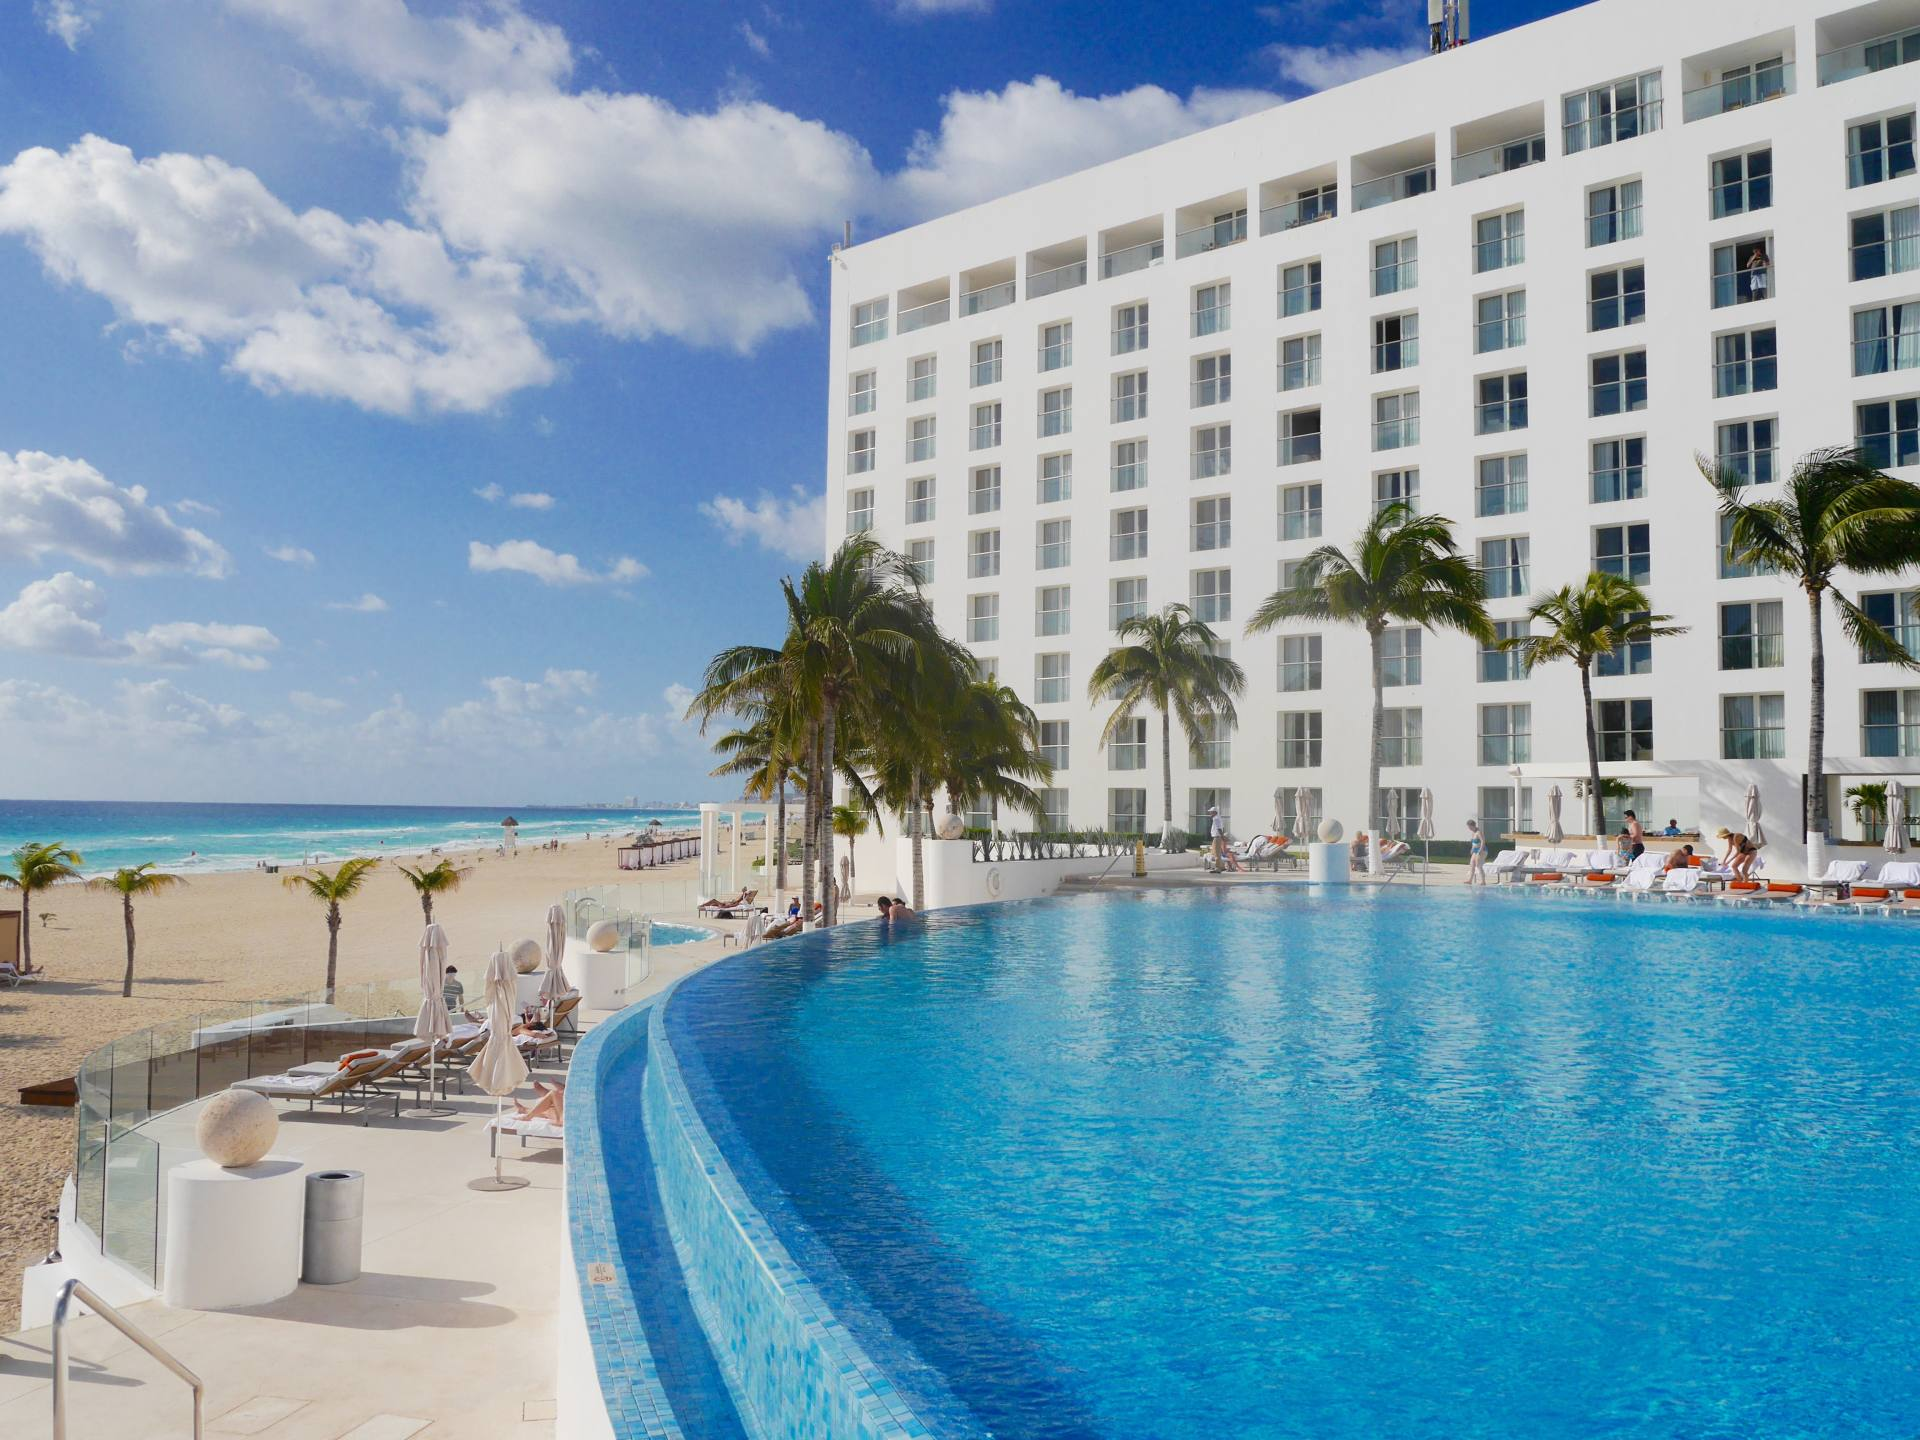 The Best All-Inclusive Adult Only Resort in Cancun: Le Blanc Spa Hotel